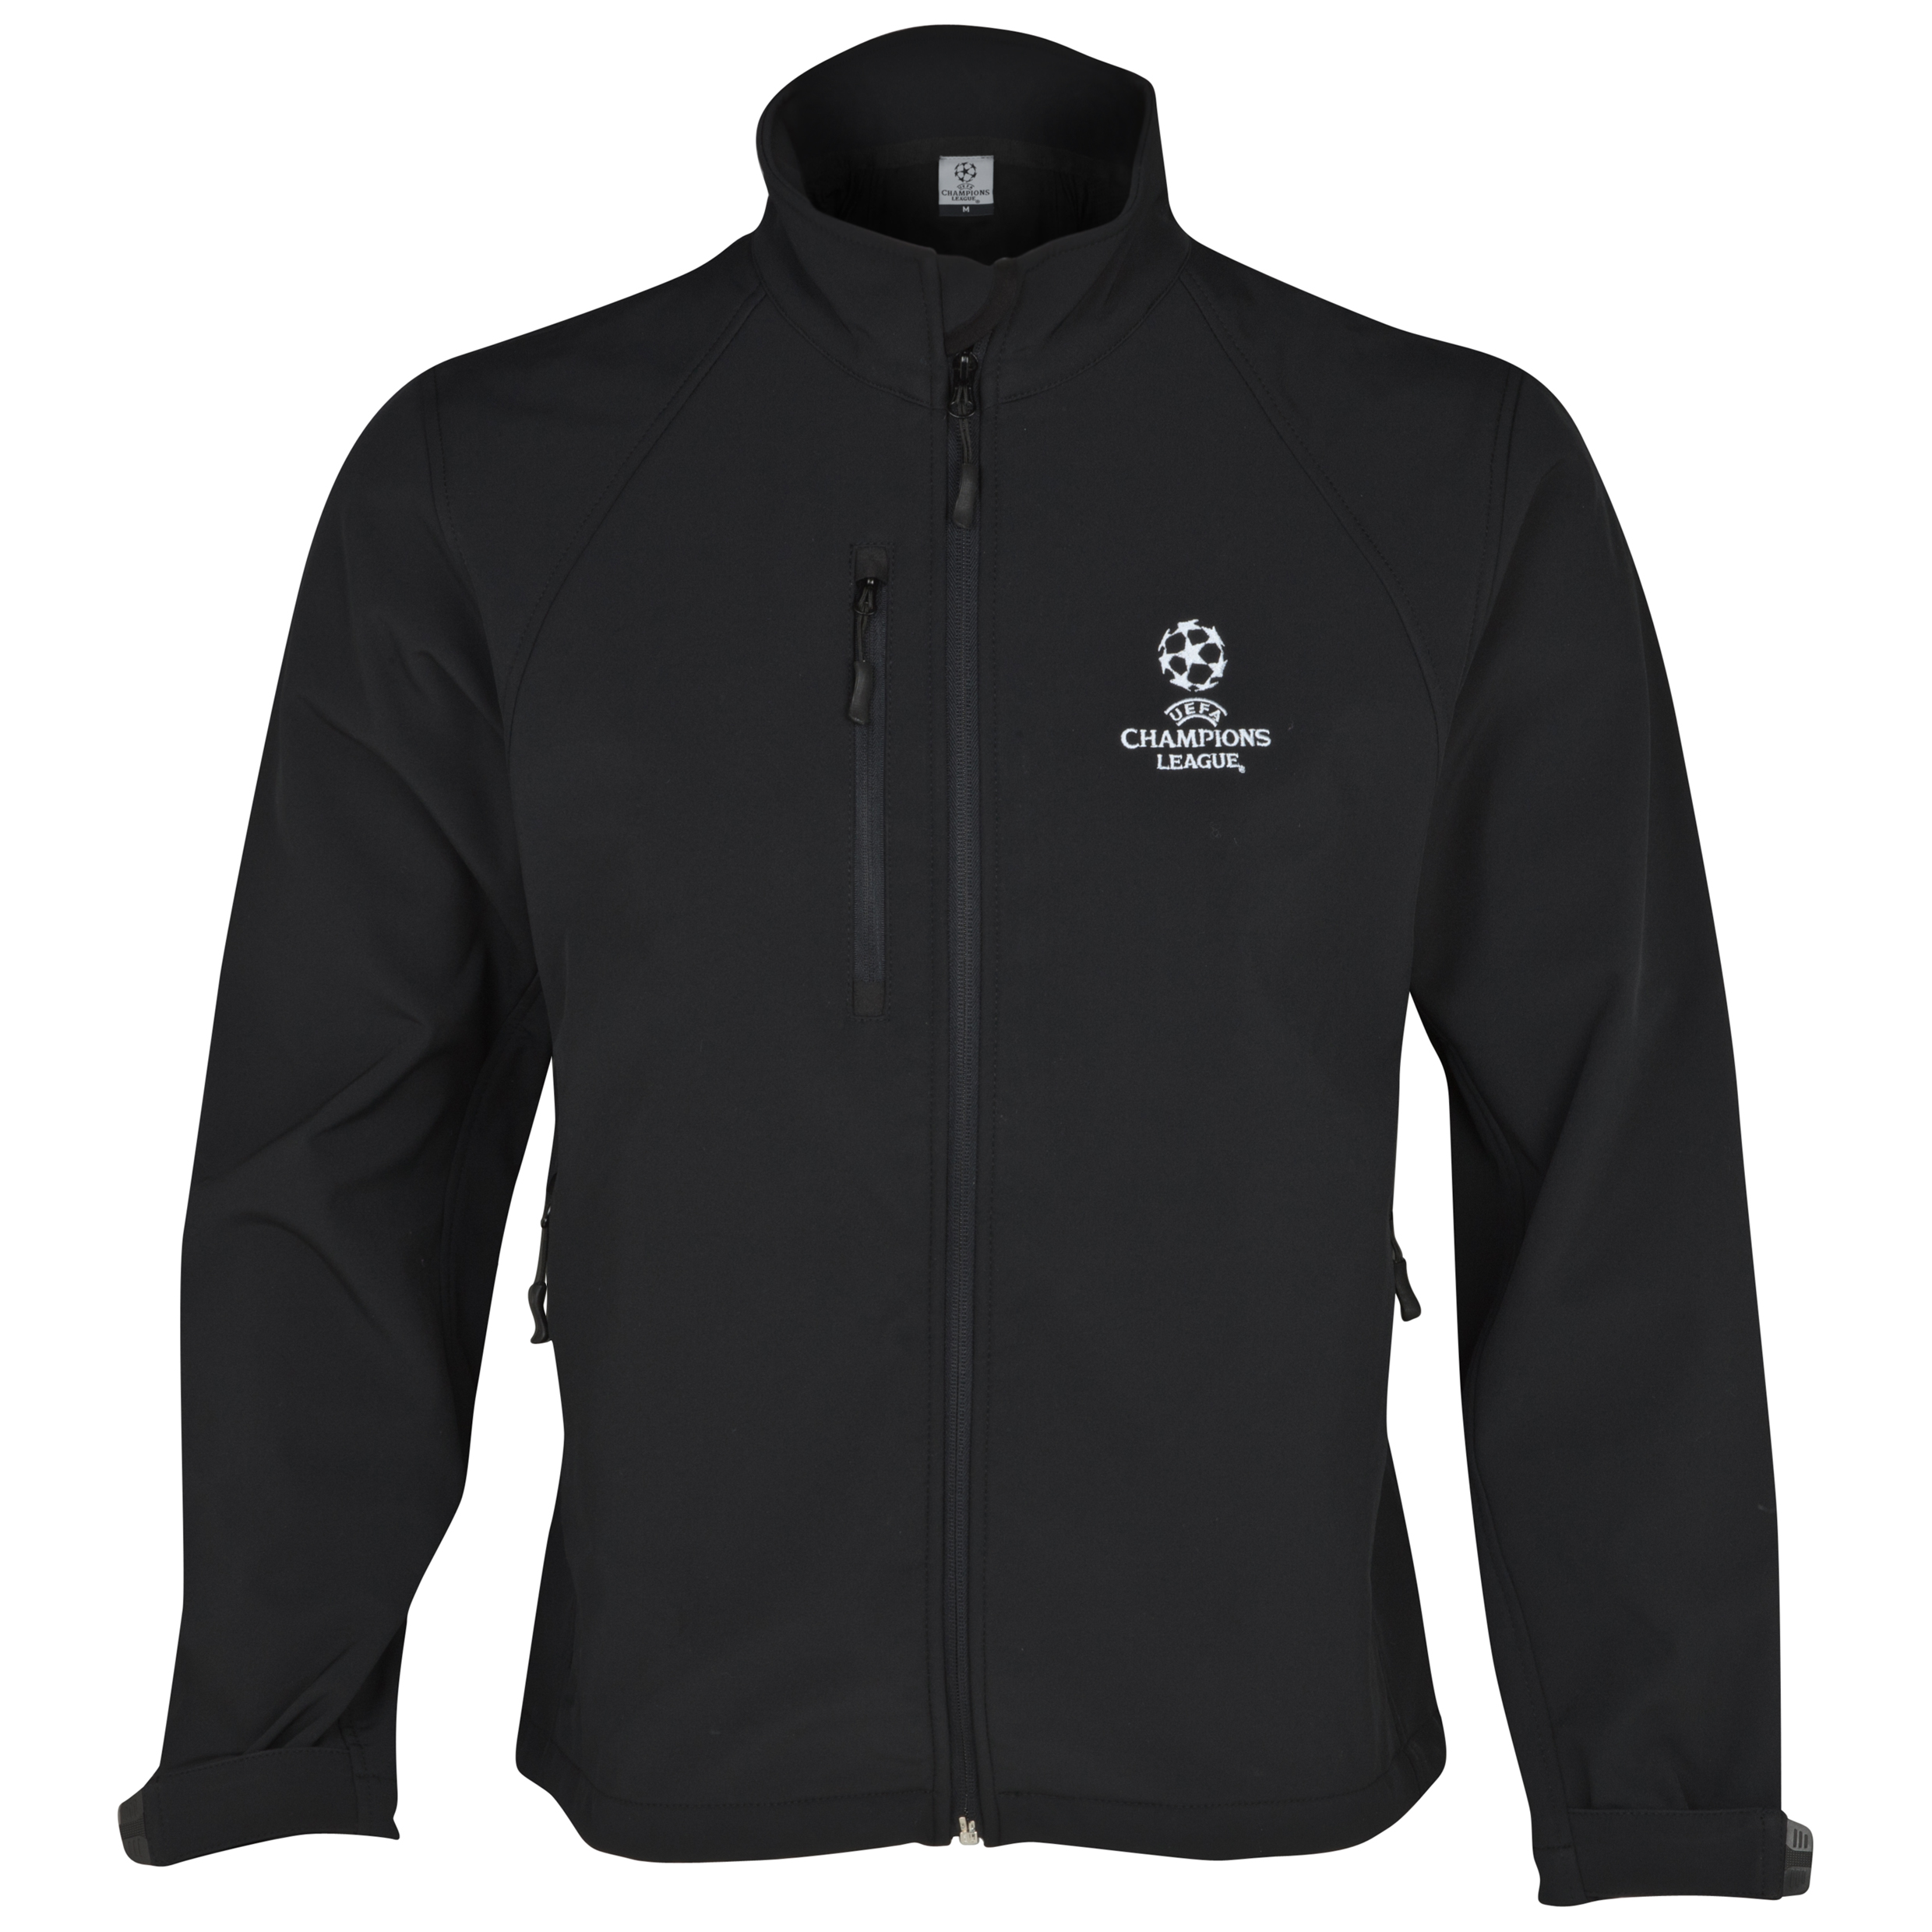 UEFA Champions League Soft Shell Jacket - Black